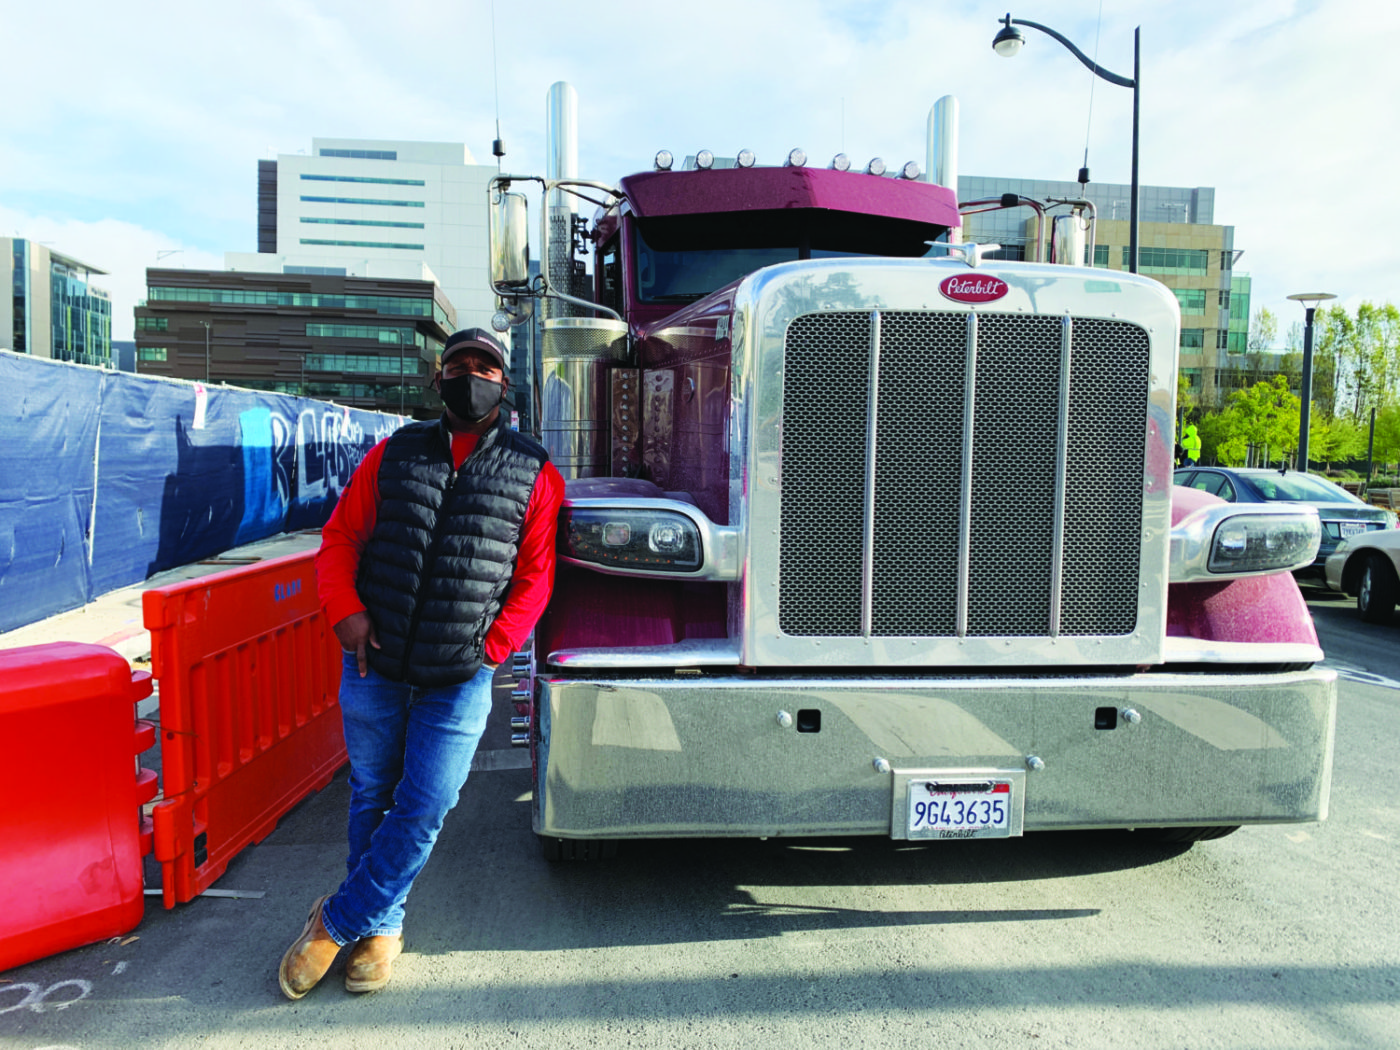 Michael-Gregory-and-truck-UCSF-job-site-shutdown-043021-by-Griffin-1400x1050, Black truckers shut down multi-million-dollar UCSF job site for 4.5 hours, Local News & Views